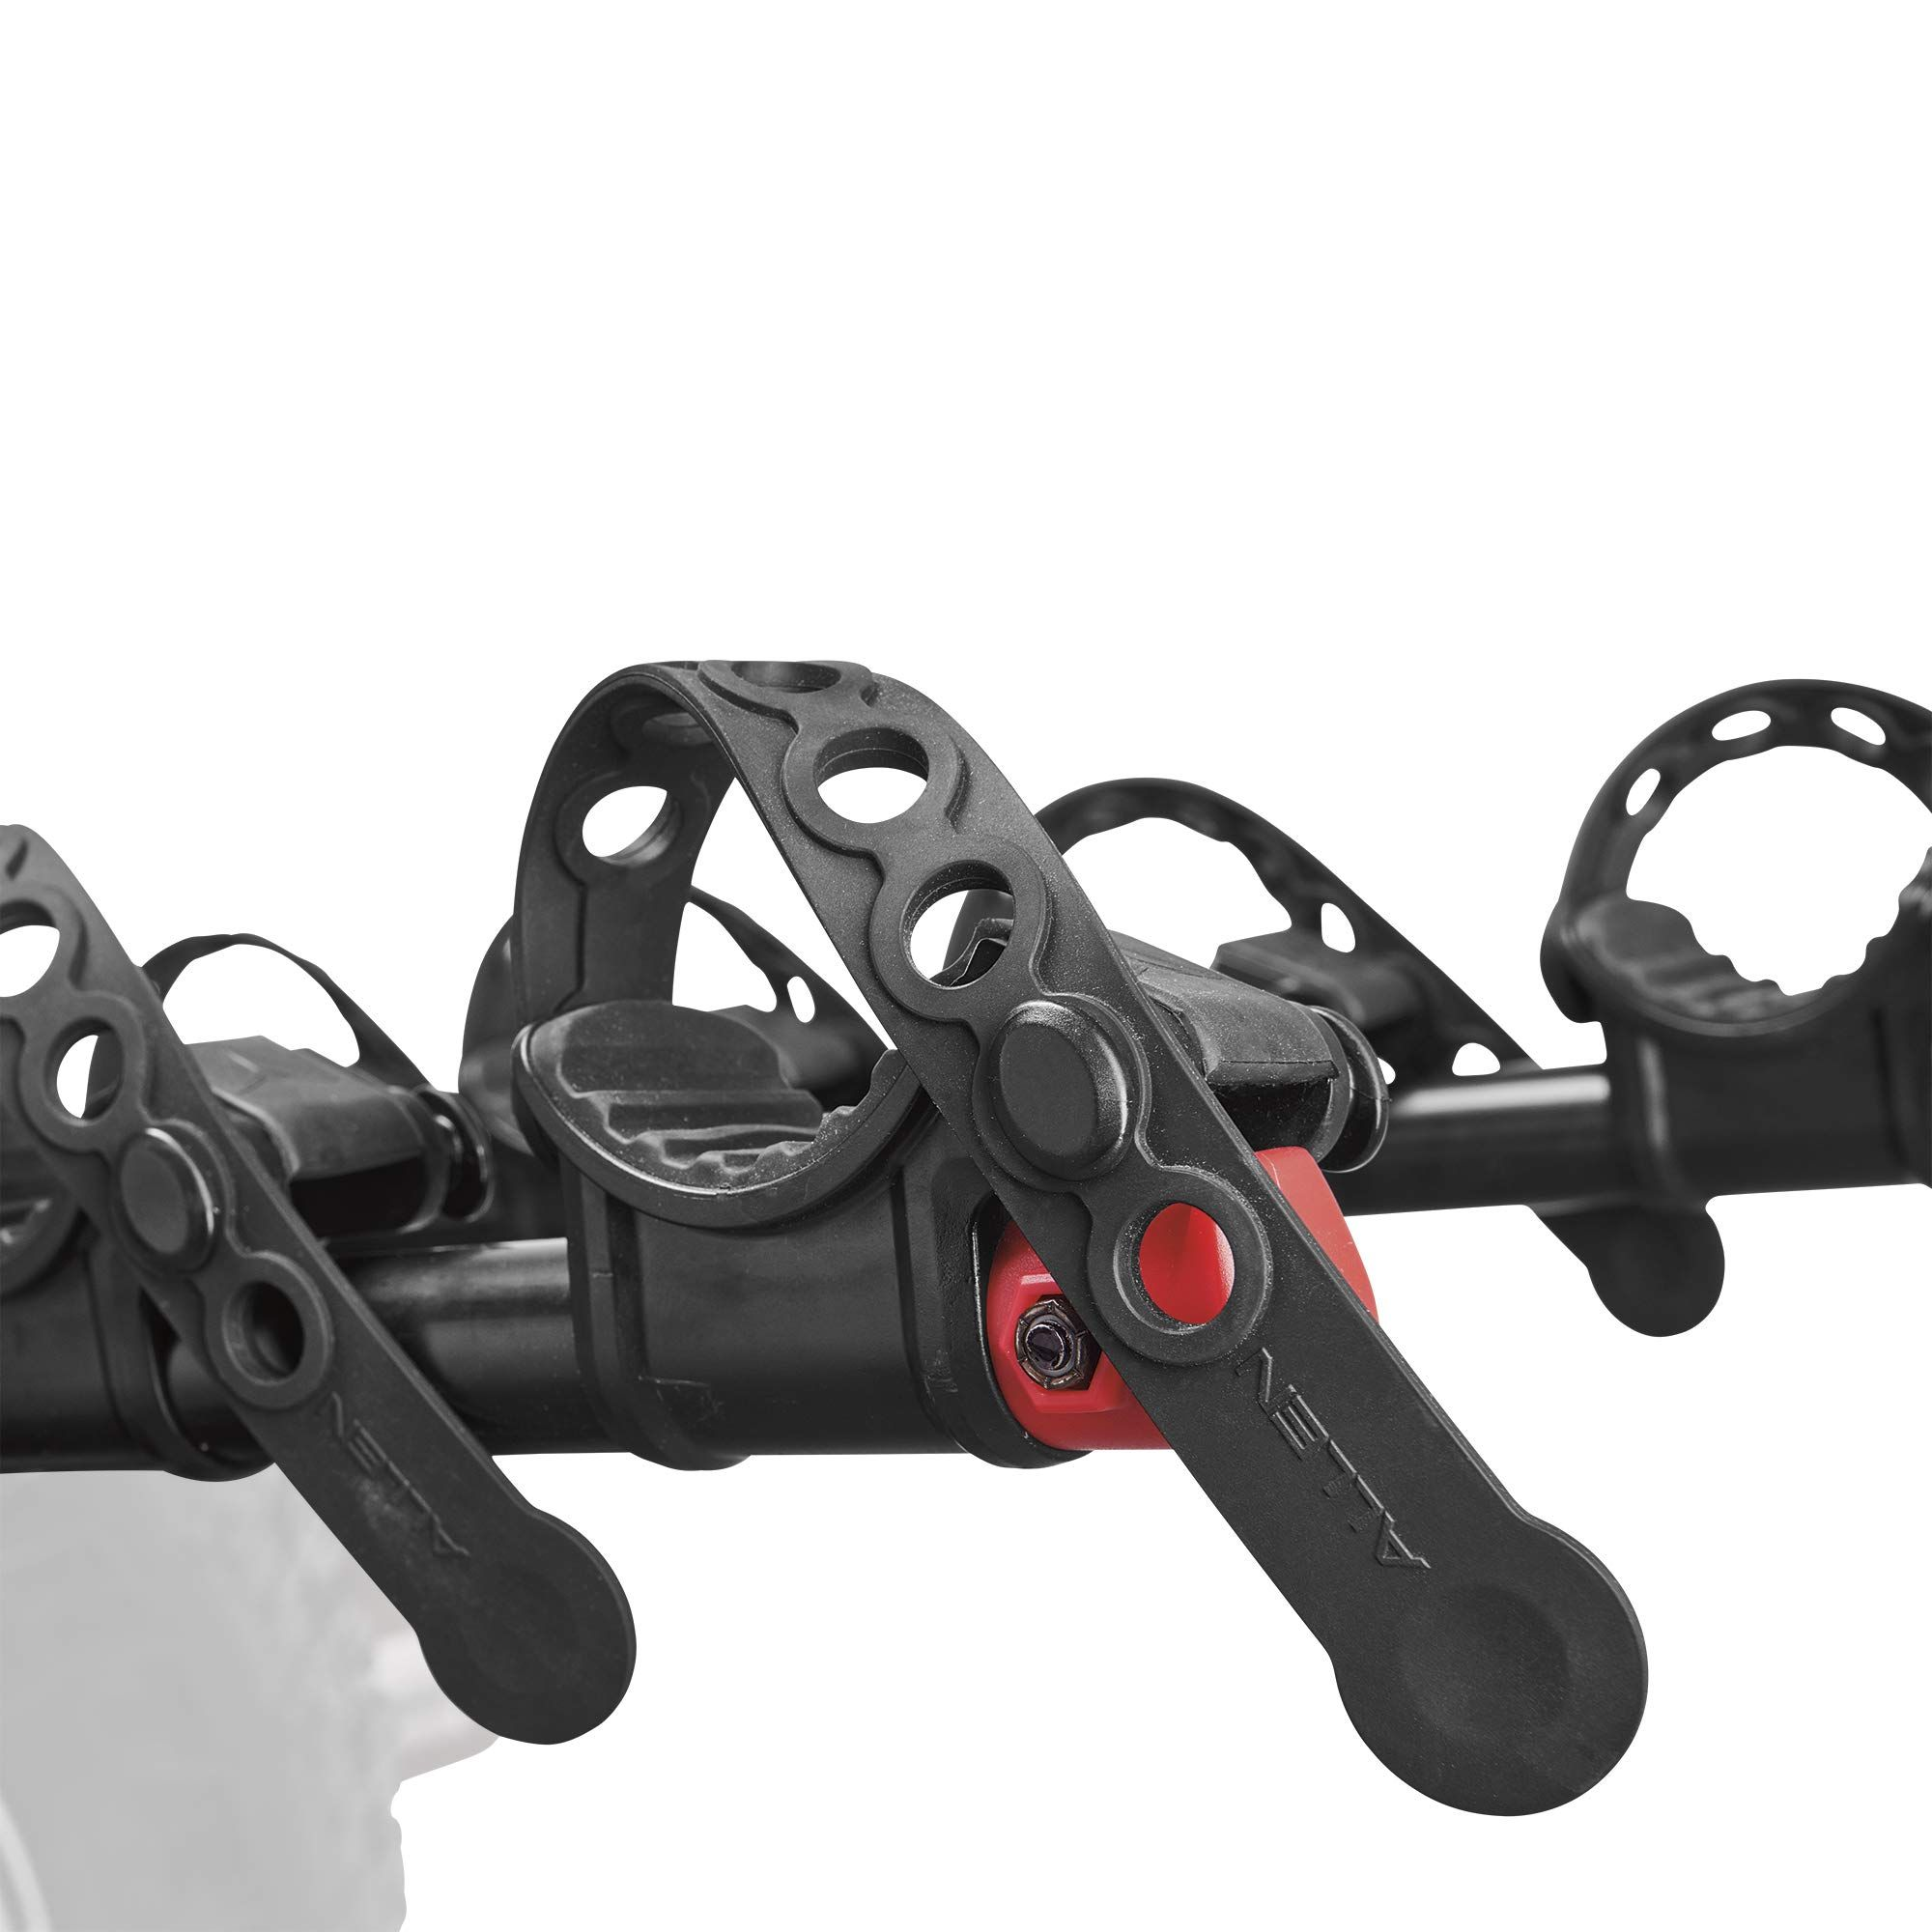 Allen Sports 4Bike Hitch Racks for 2 in. Hitch, Ad